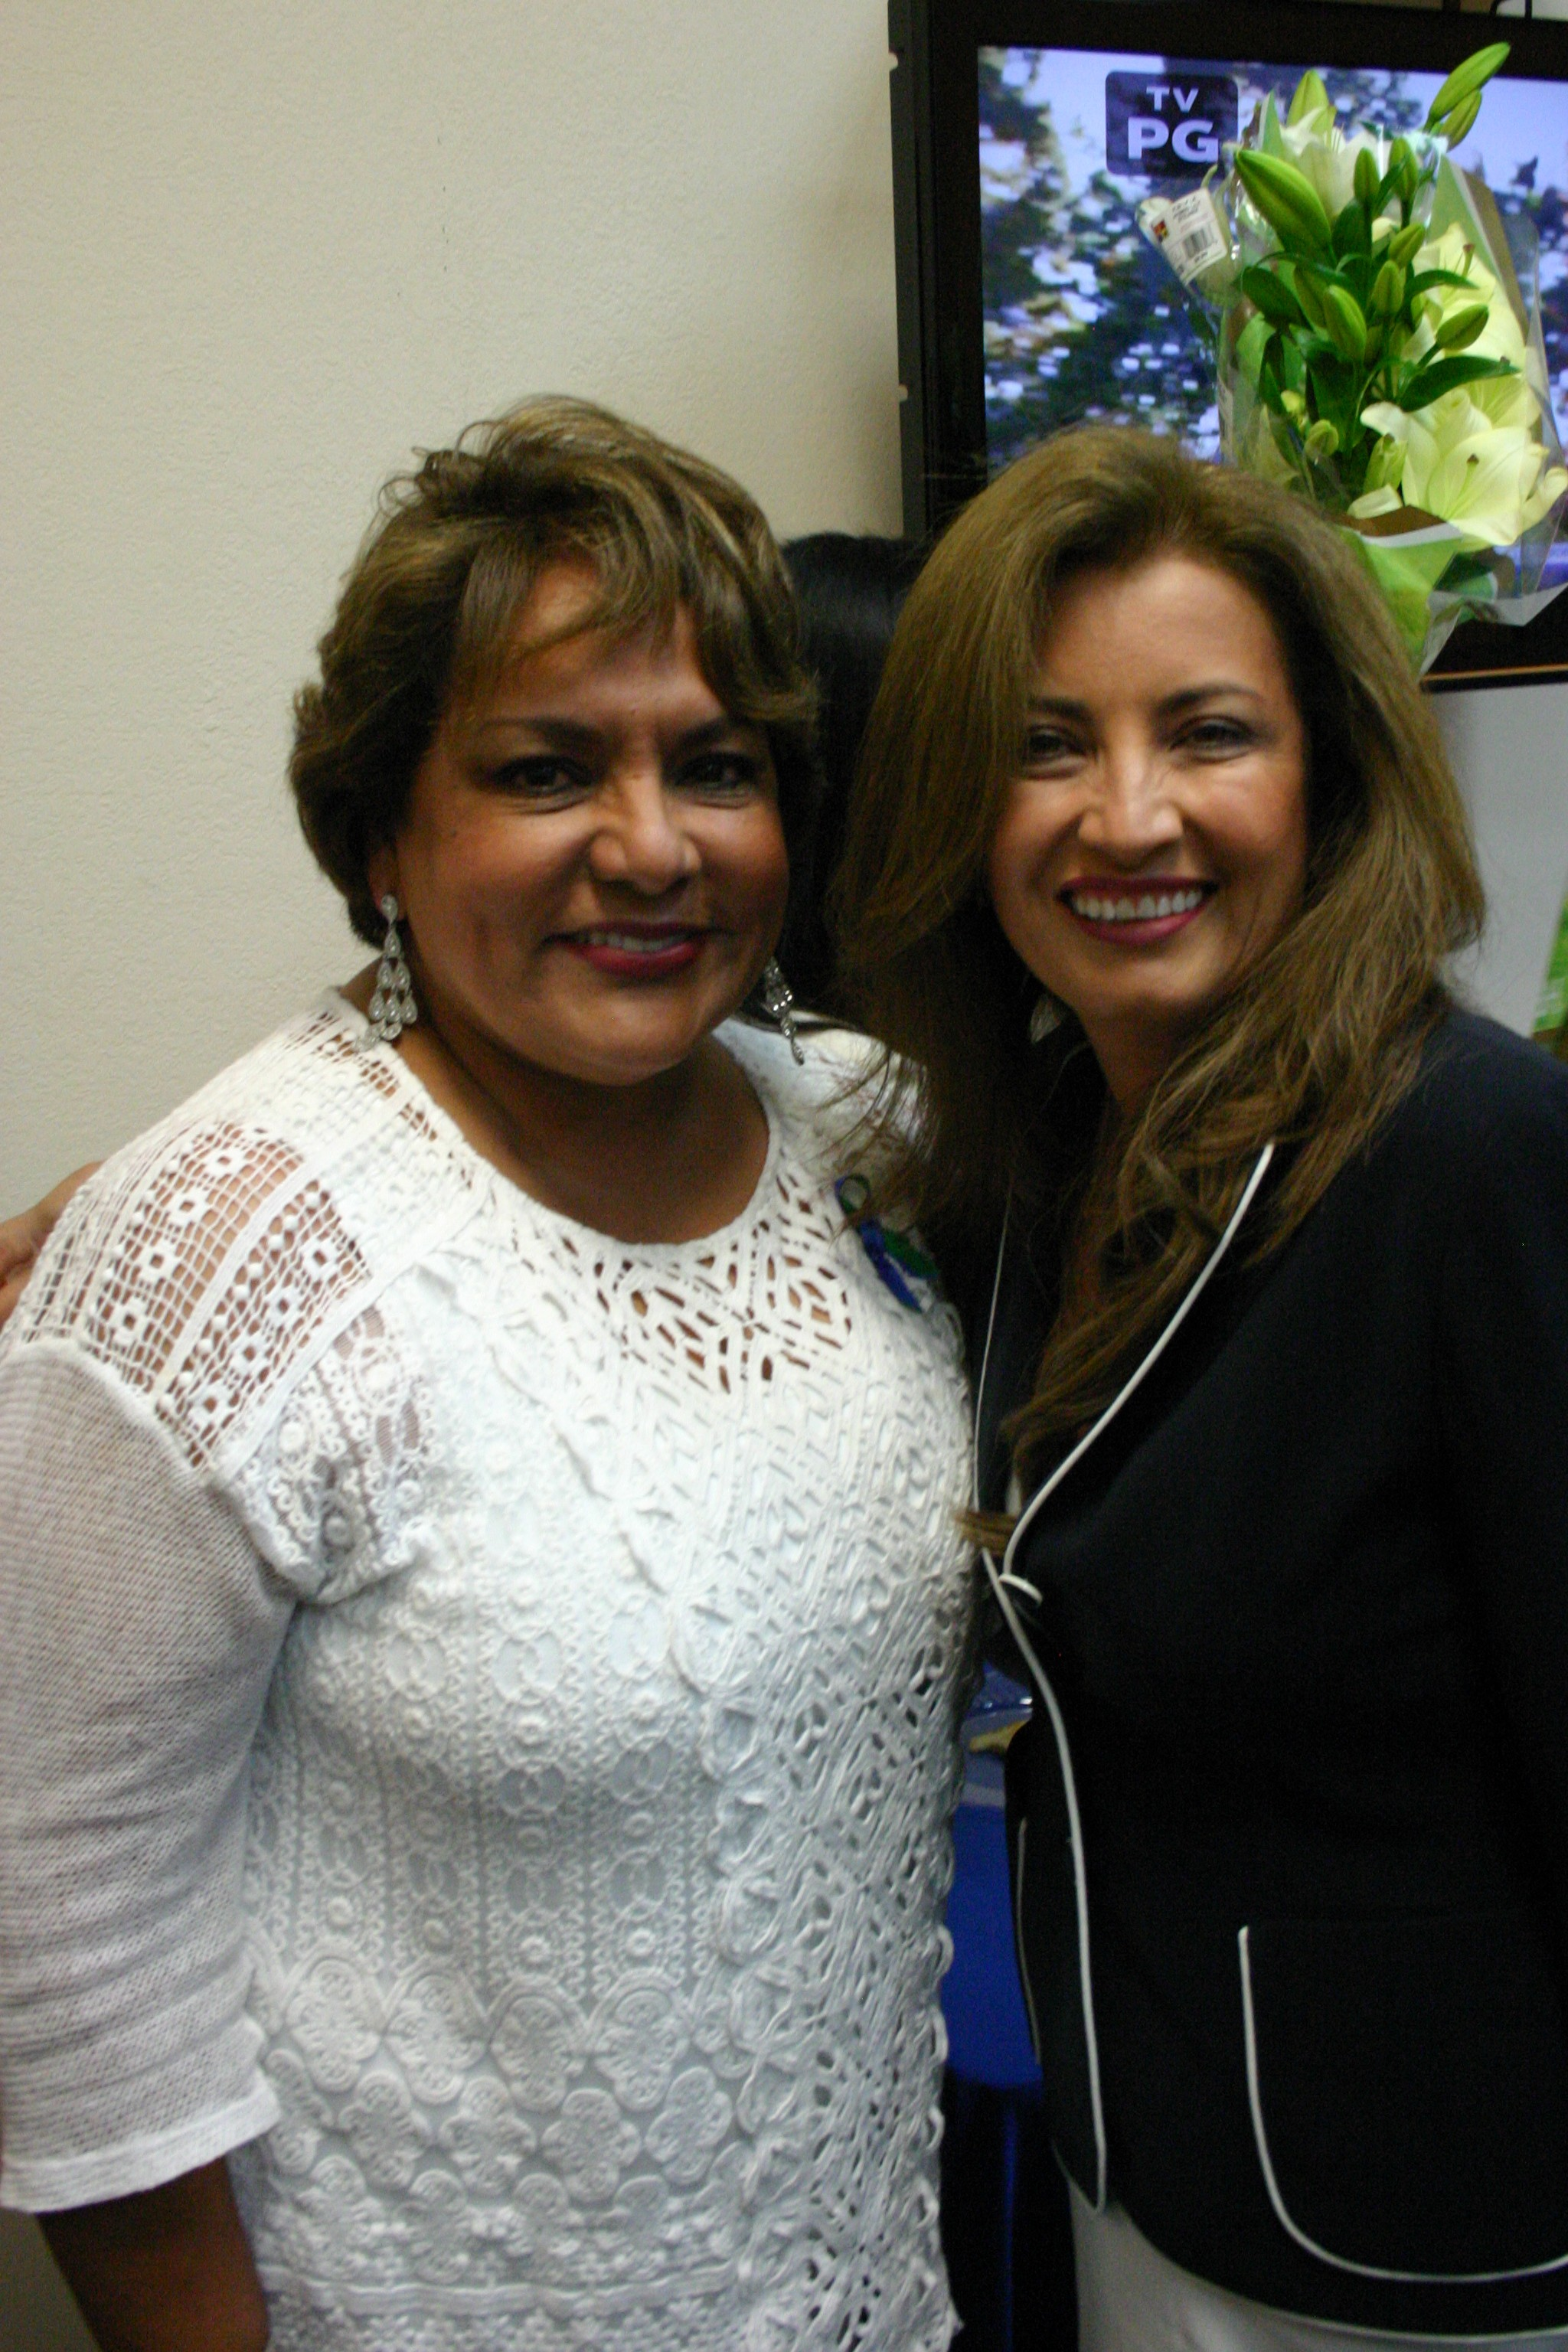 Martinez will be first out Dallas County Justice of the Peace